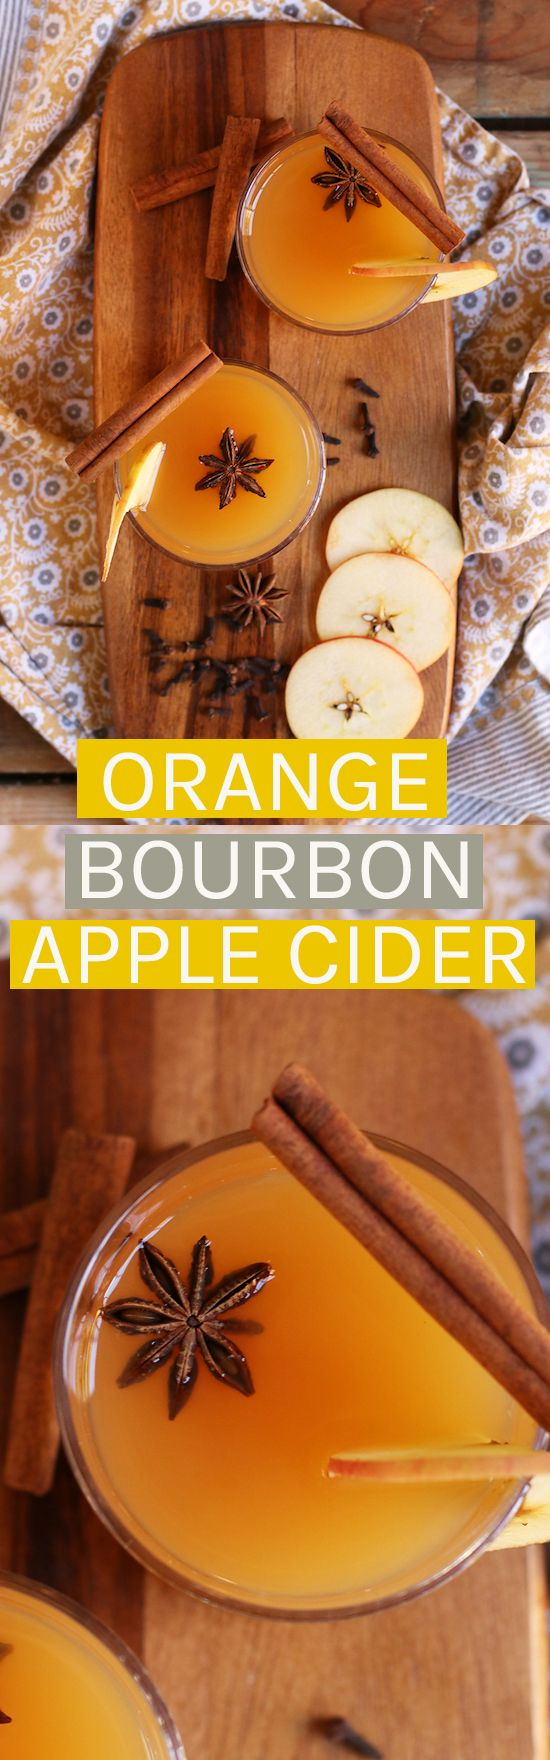 This Orange Bourbon Apple Cider pairs perfectly with your holiday desserts